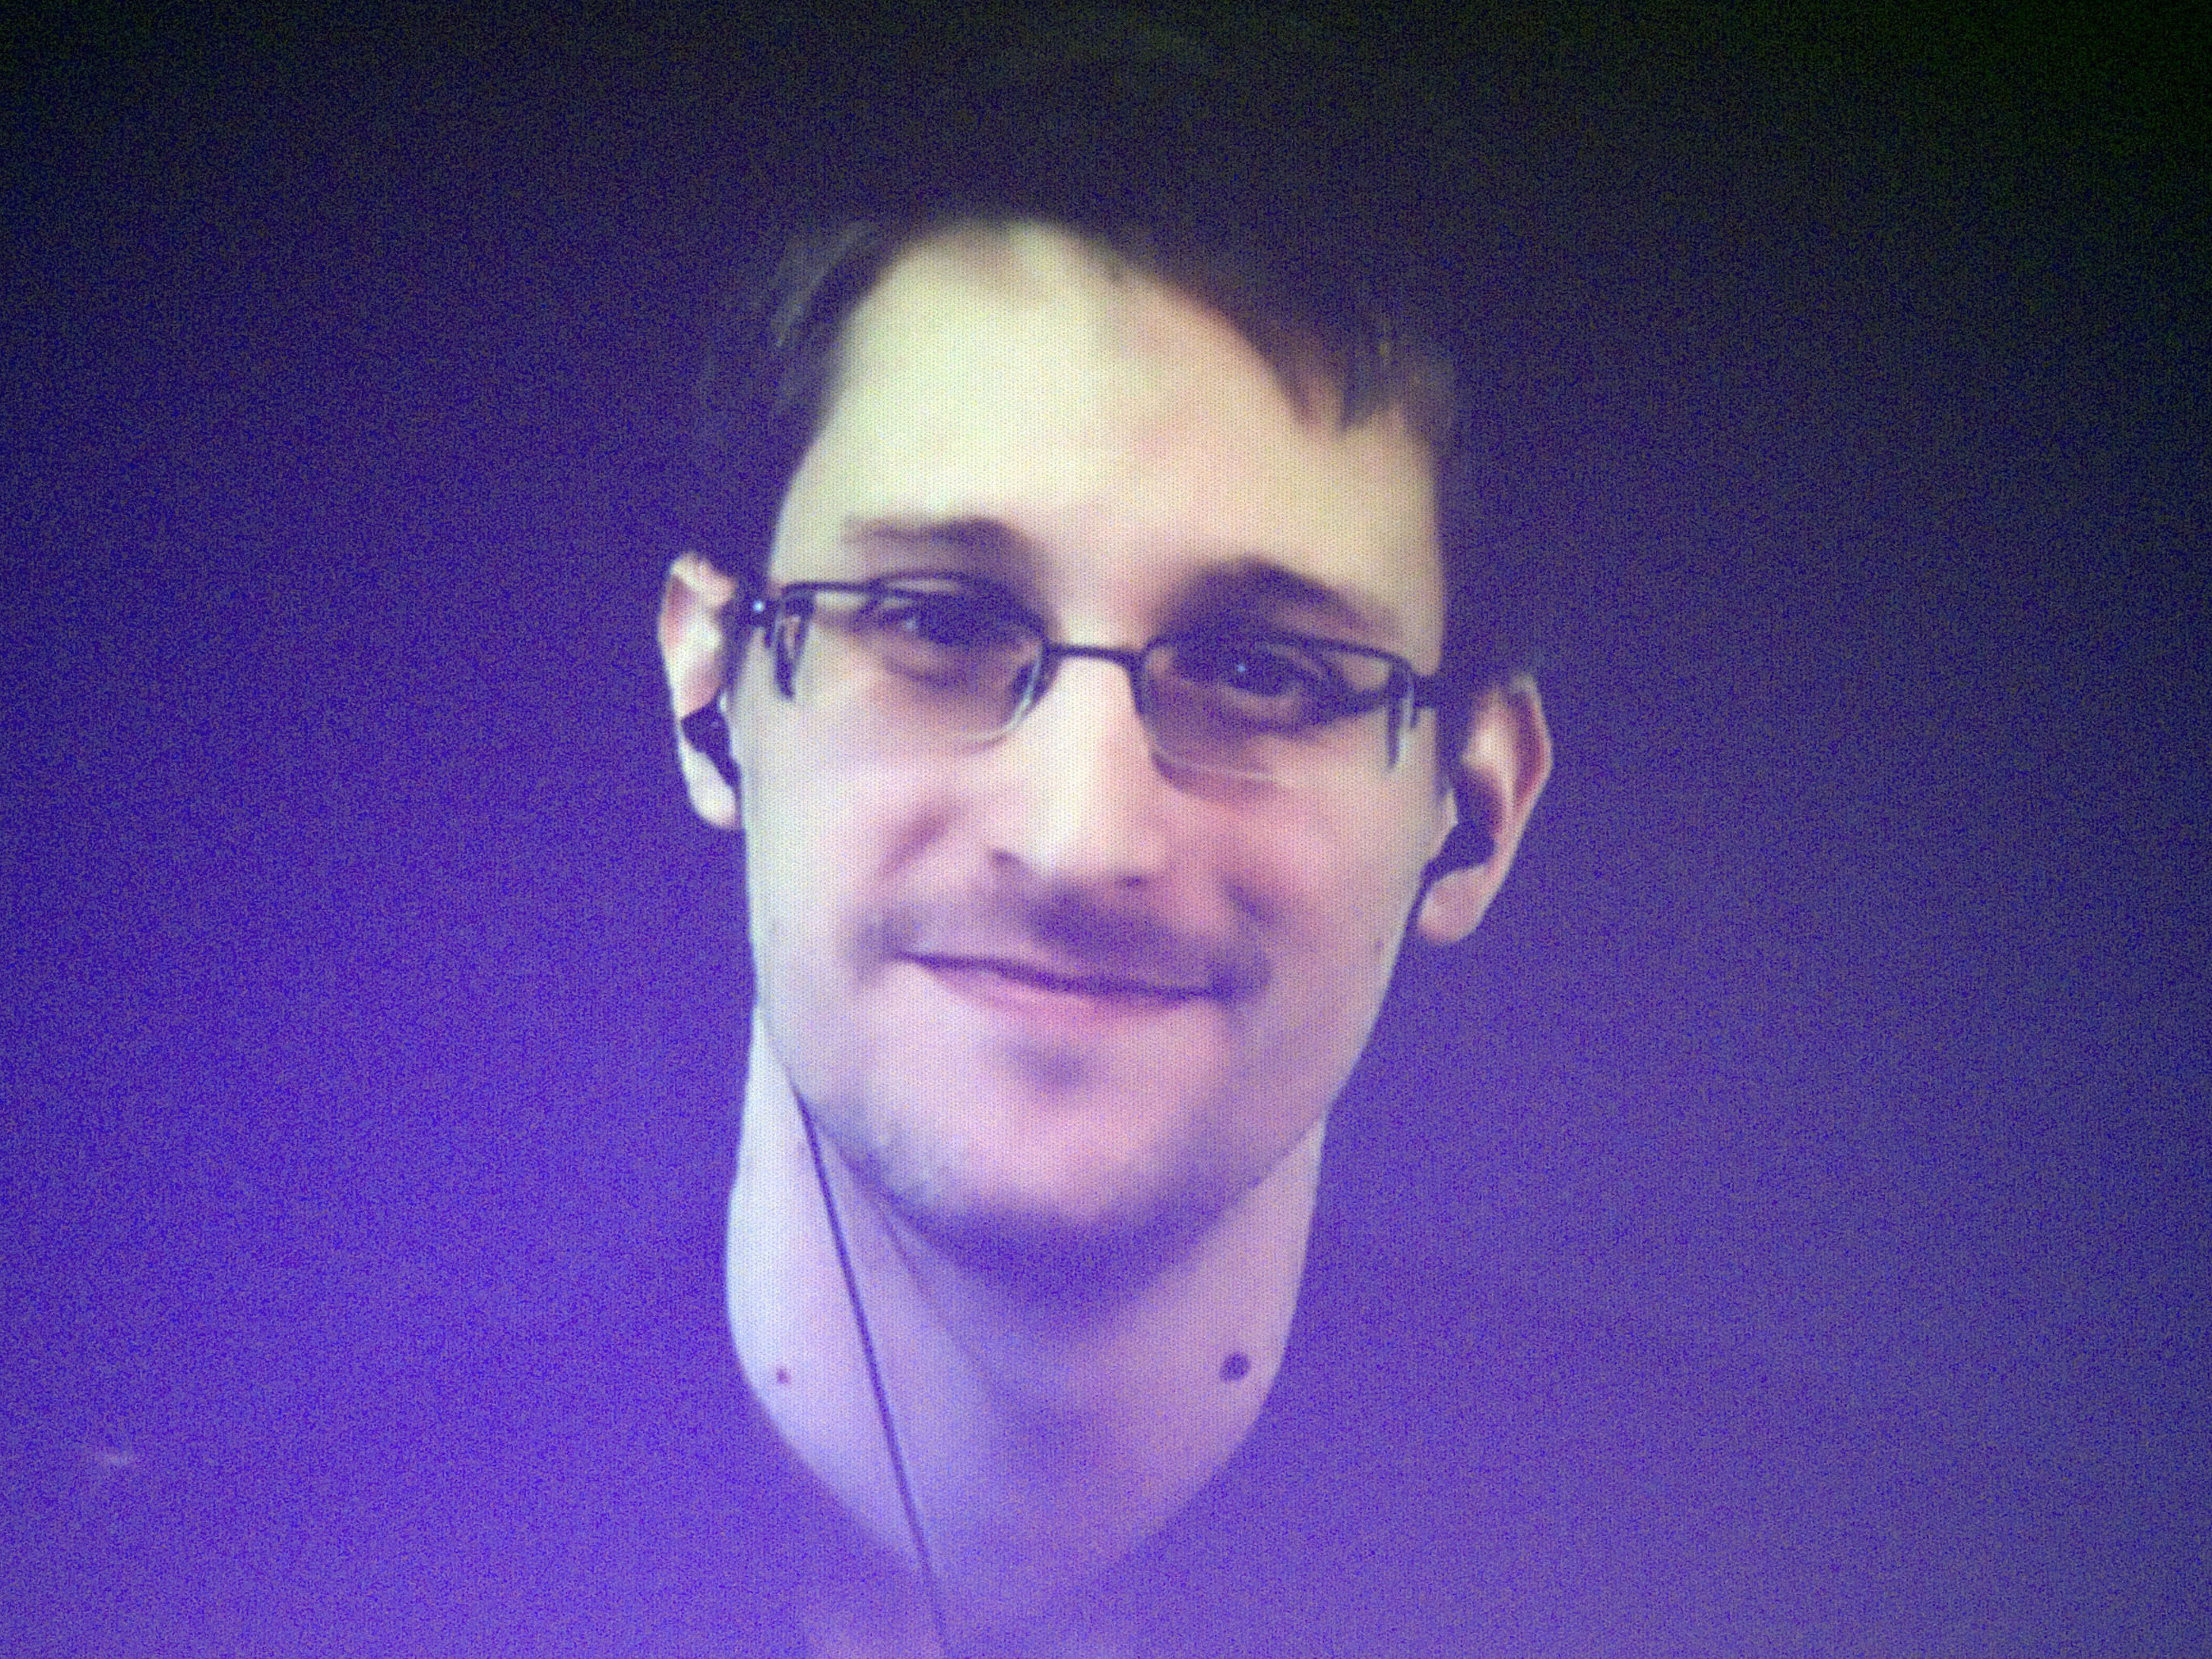 Snowden dismisses 'distorted' U.S. report on mass surveillance disclosures